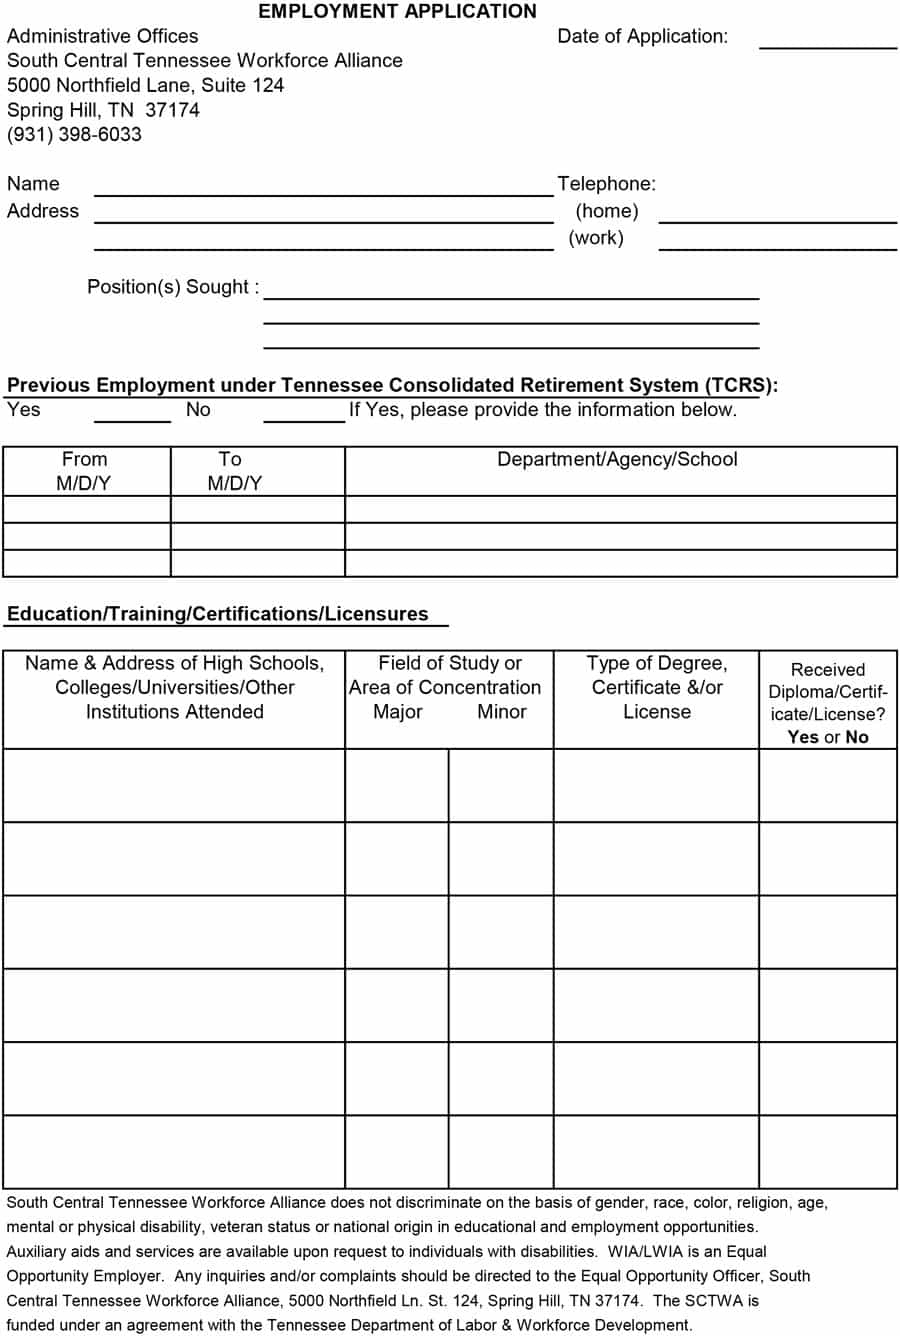 50 Free Employment / Job Application Form Templates [Printable - Free Printable Job Application Form